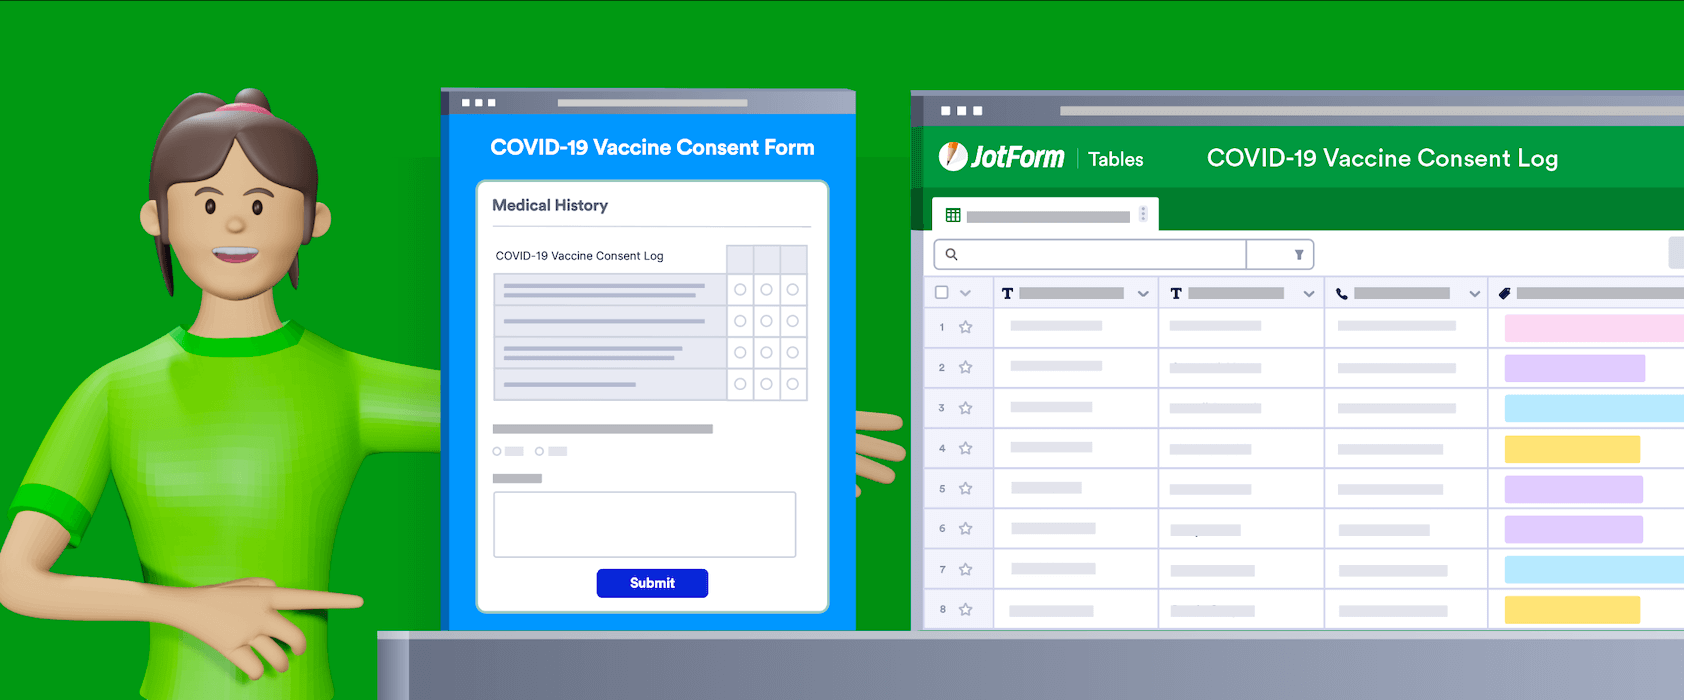 How to organize your vaccine distribution with JotForm